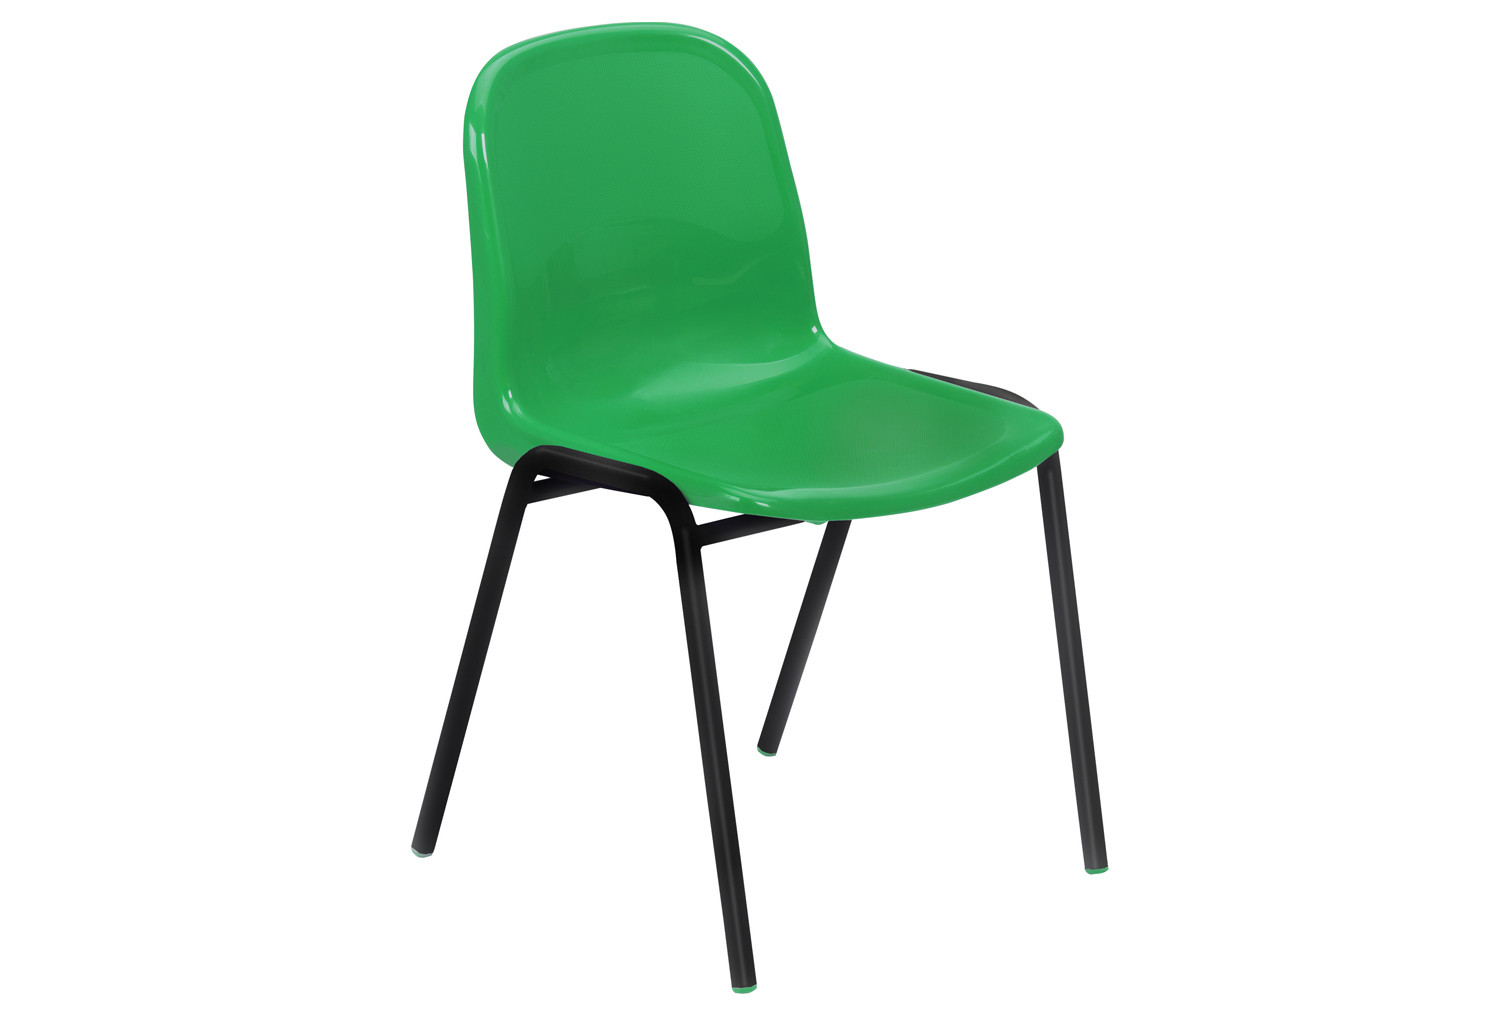 Proform Harmony Classroom Chair